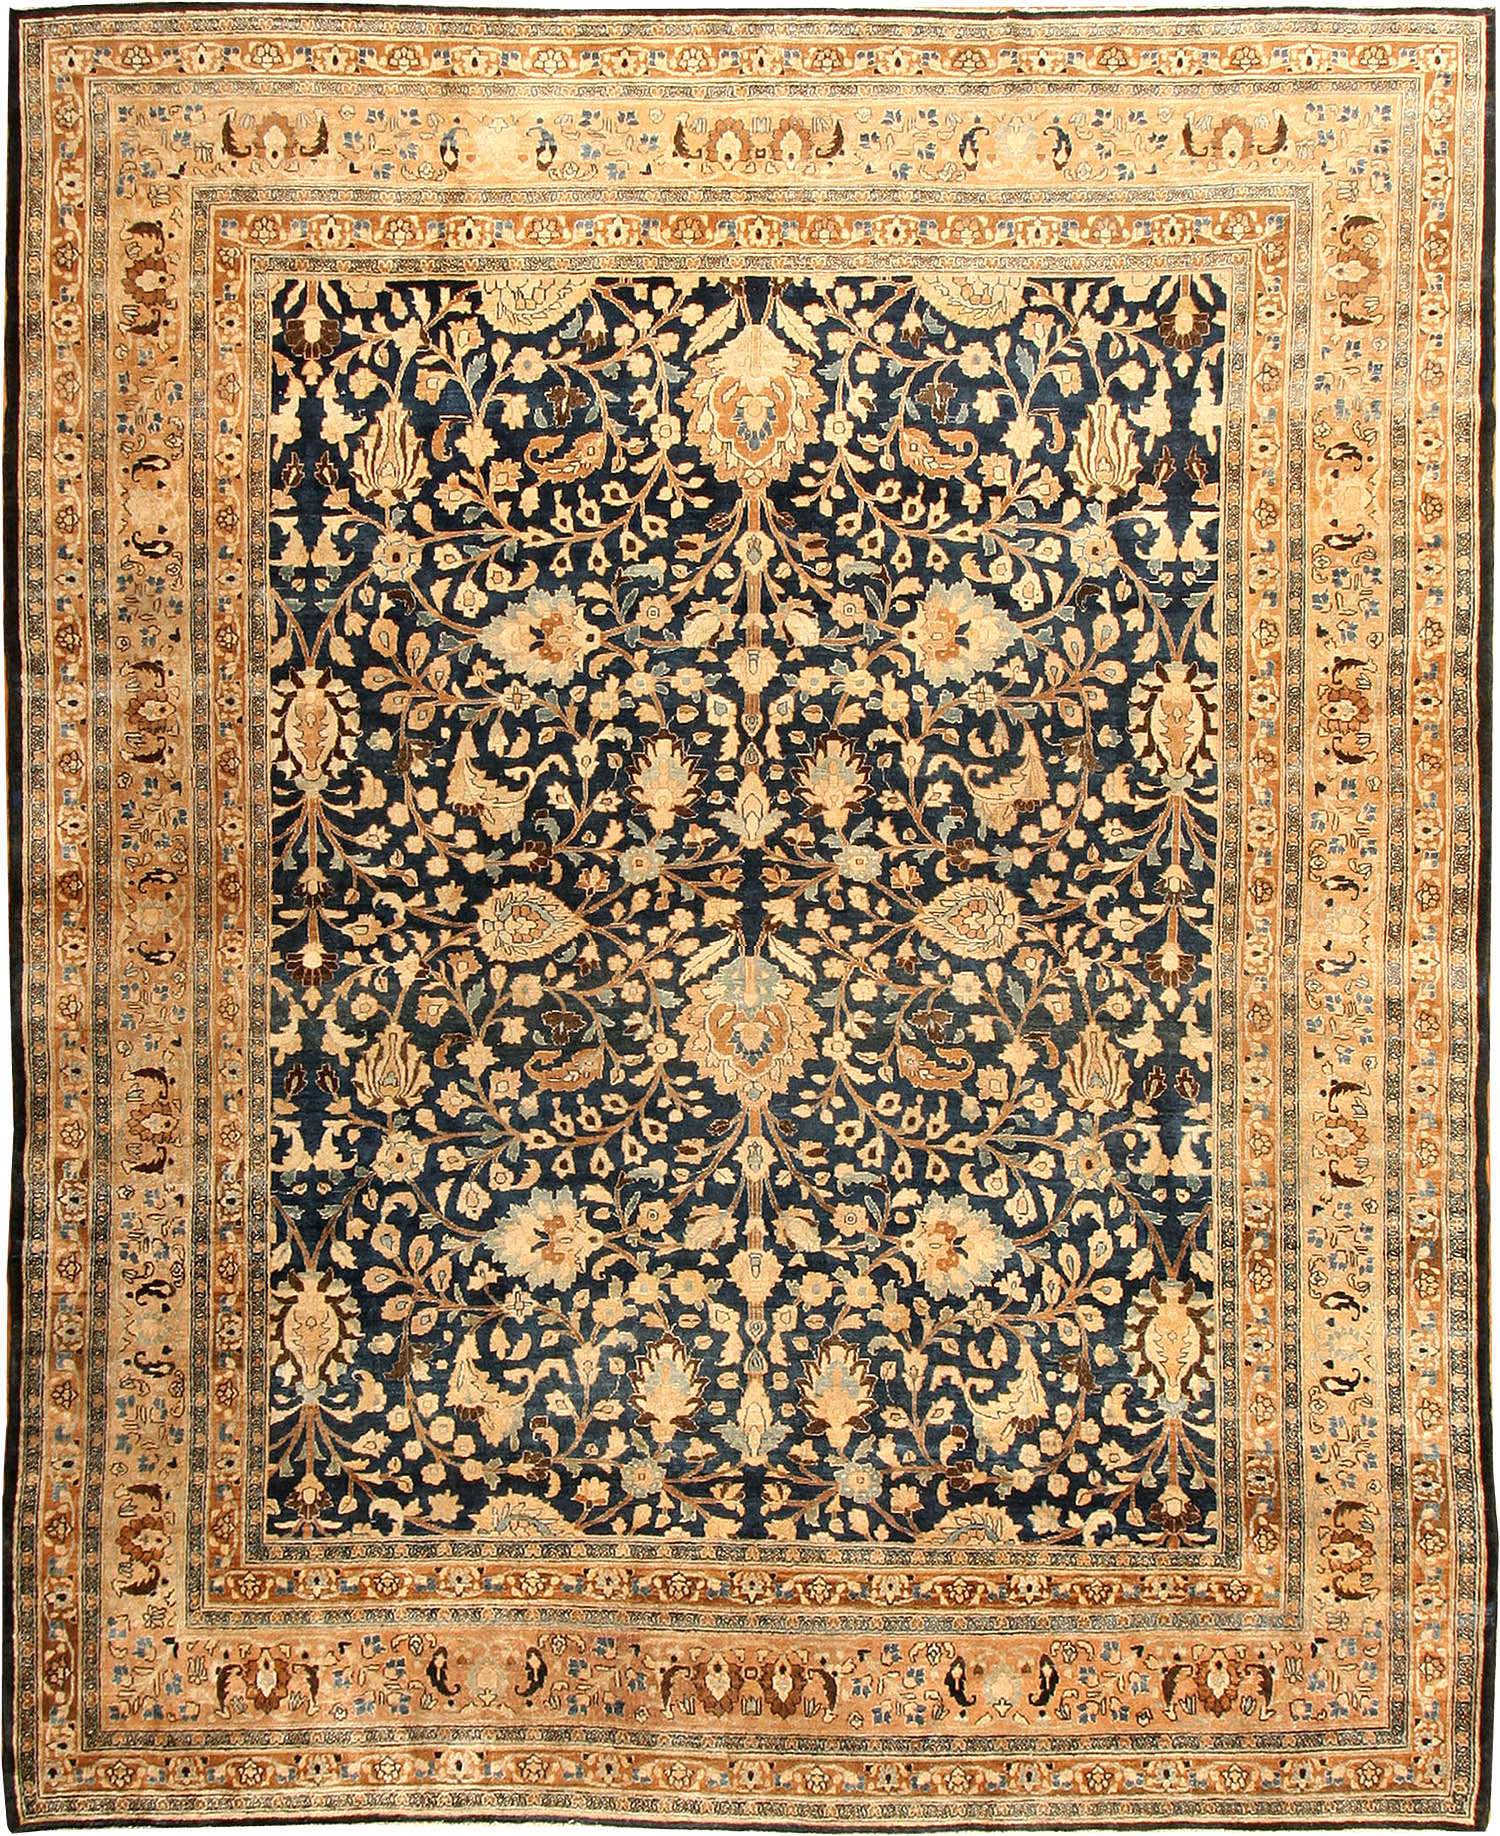 Antique khorassan persian rugs 42809 for sale classifieds - Deluxe persian living room designs with artistic rug collection ...